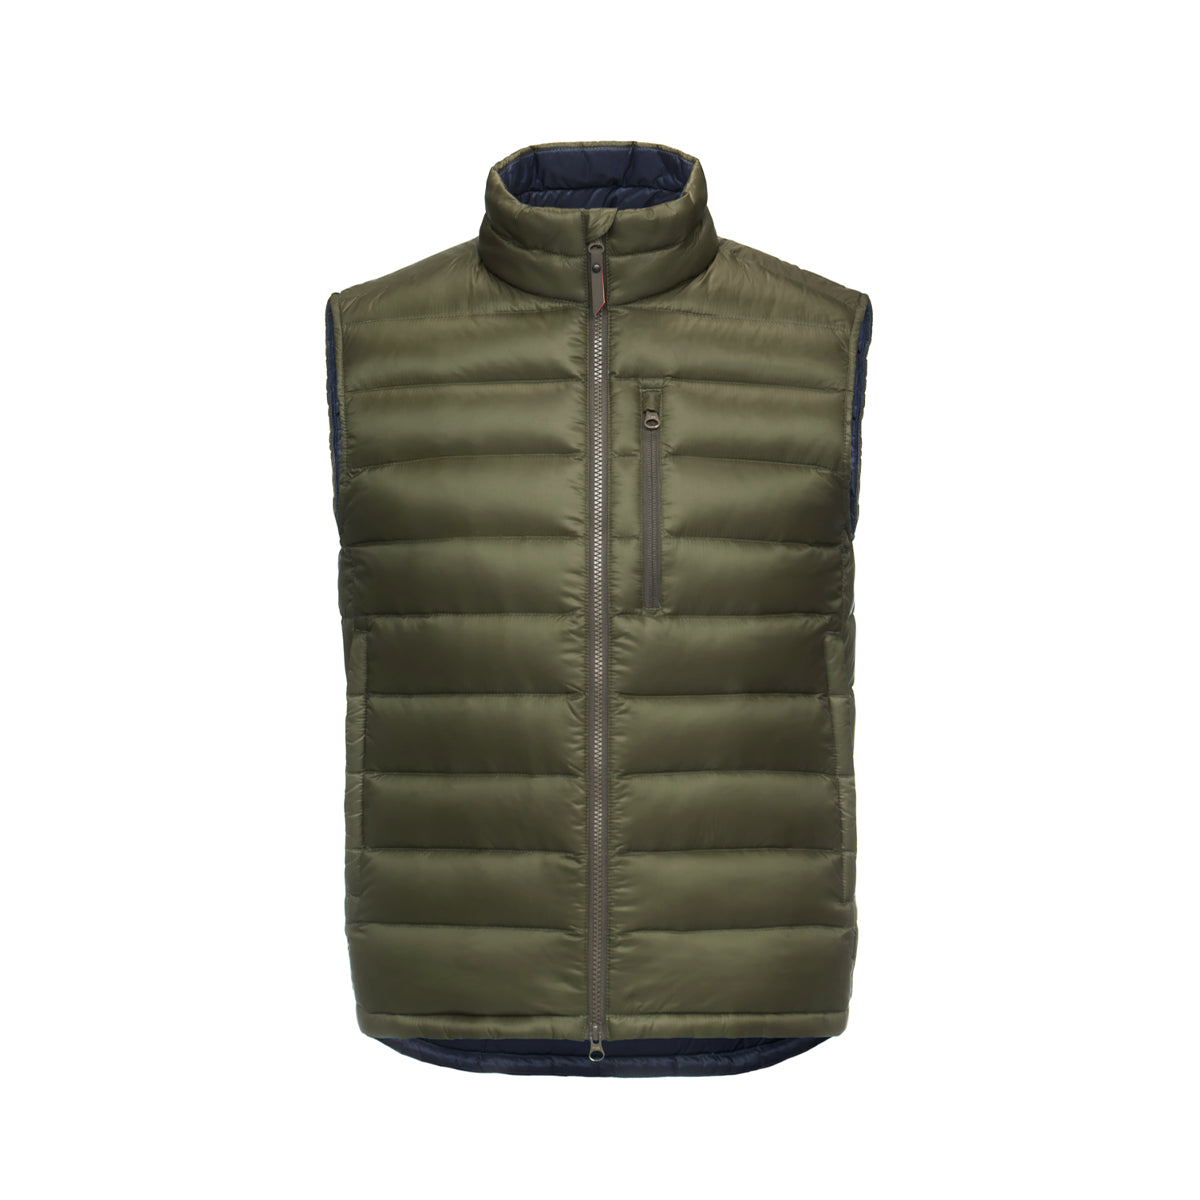 Portland II Vest - background::white,variant::olive